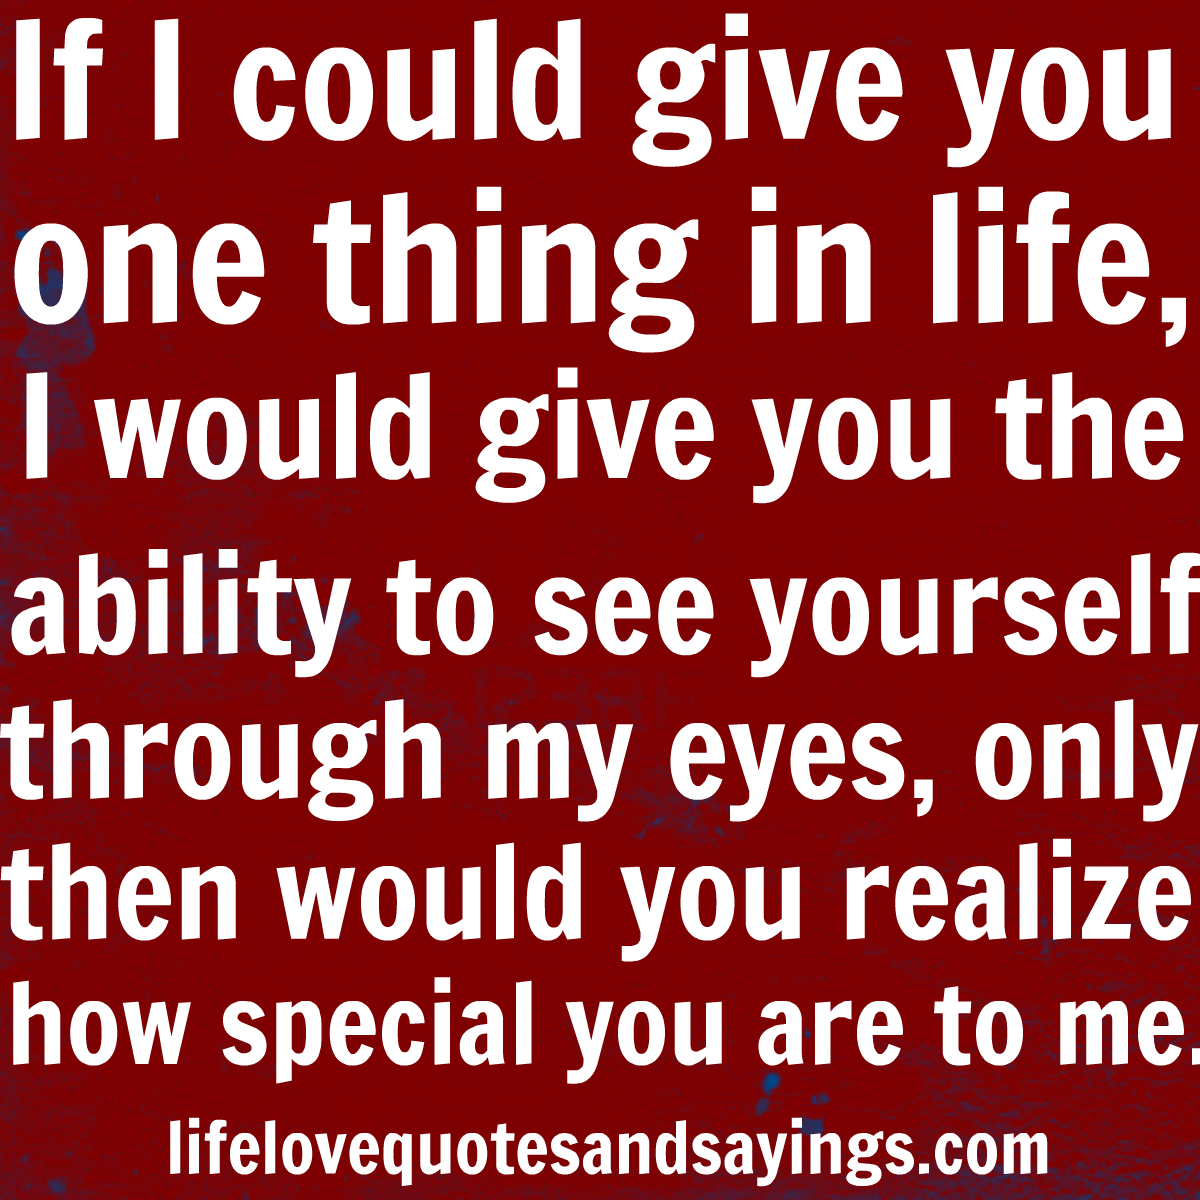 Quotes And Sayings: Ability Quotes And Sayings. QuotesGram